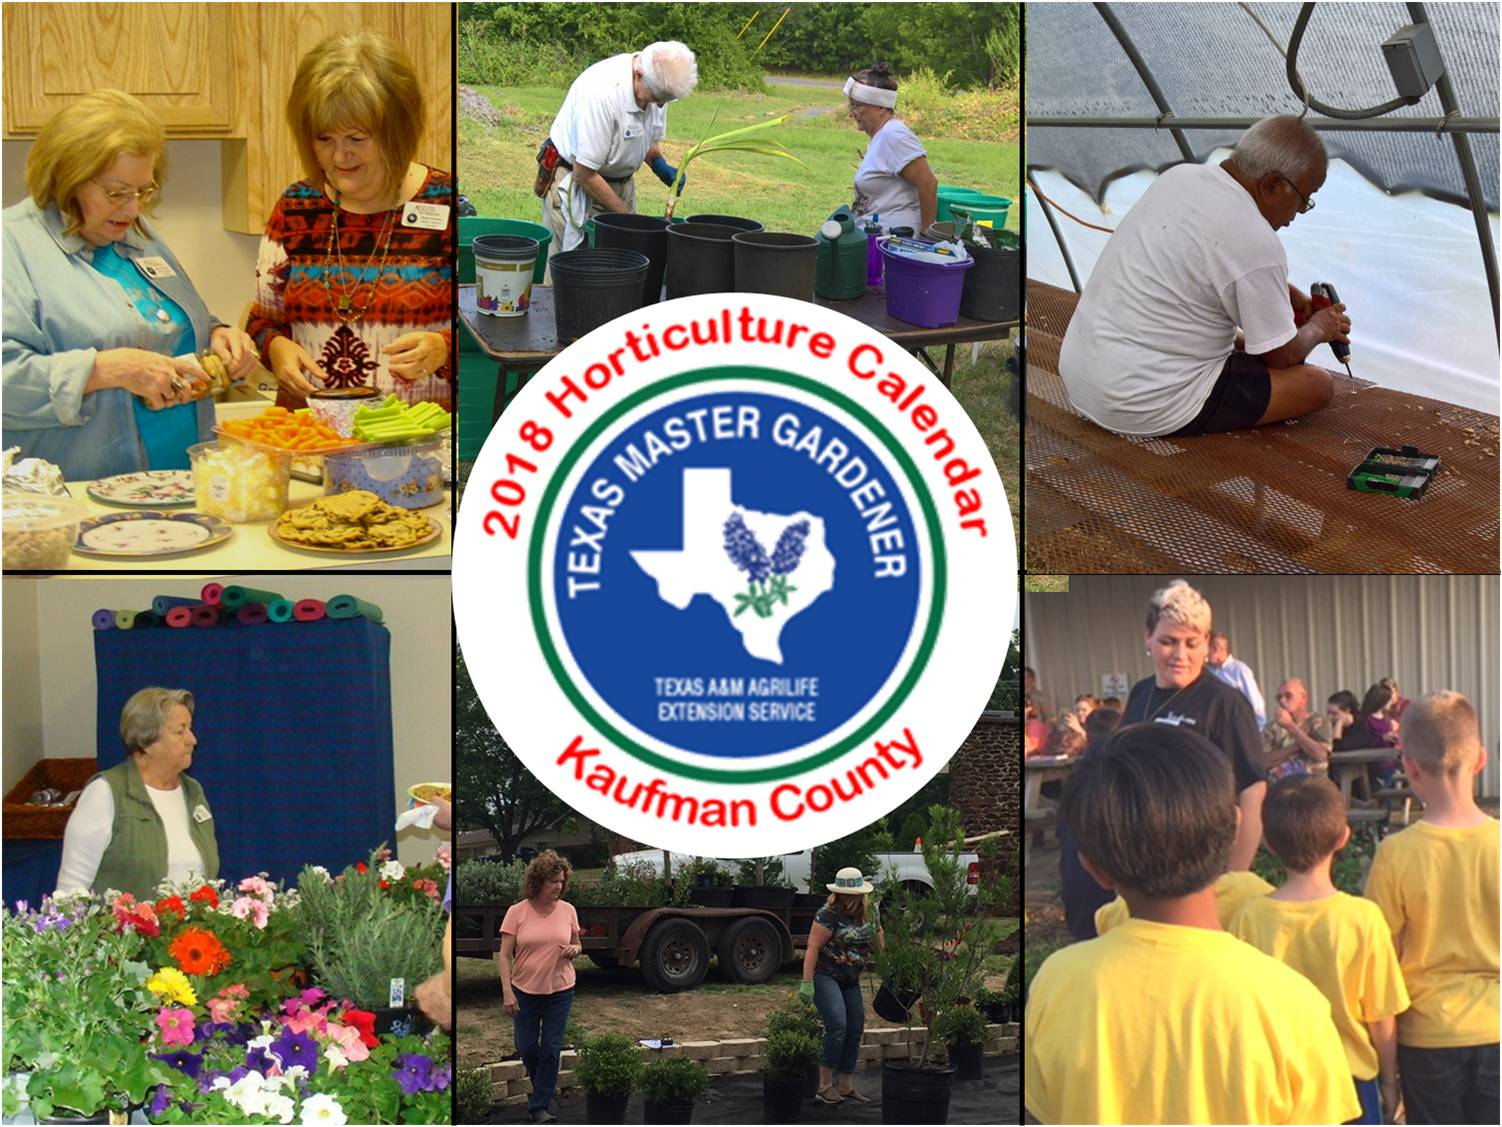 News – Kaufman County Master Gardener Association